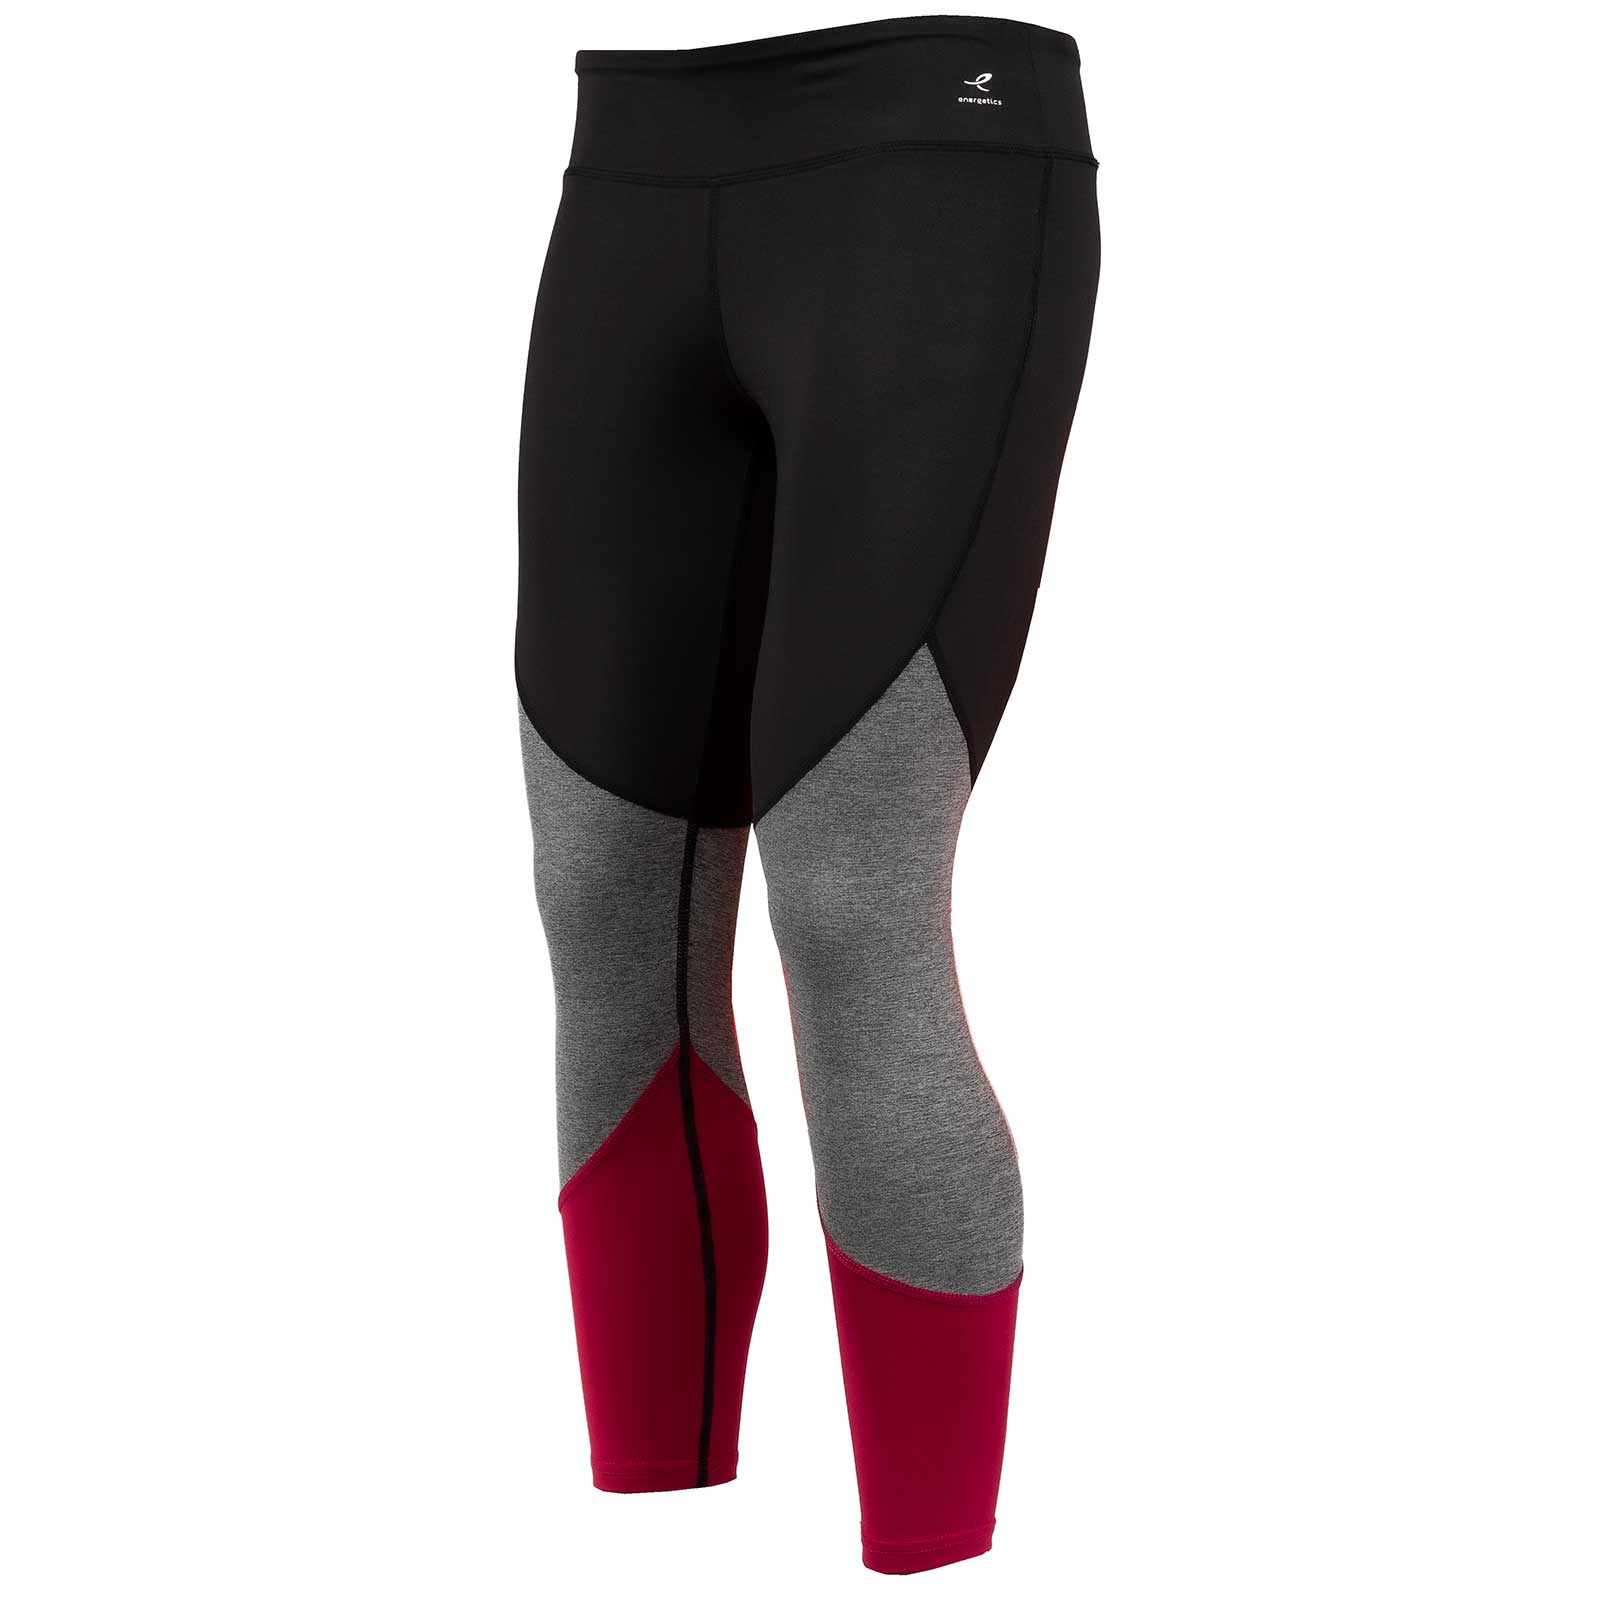 Energetics Girls' Kastira 3 Tight Black